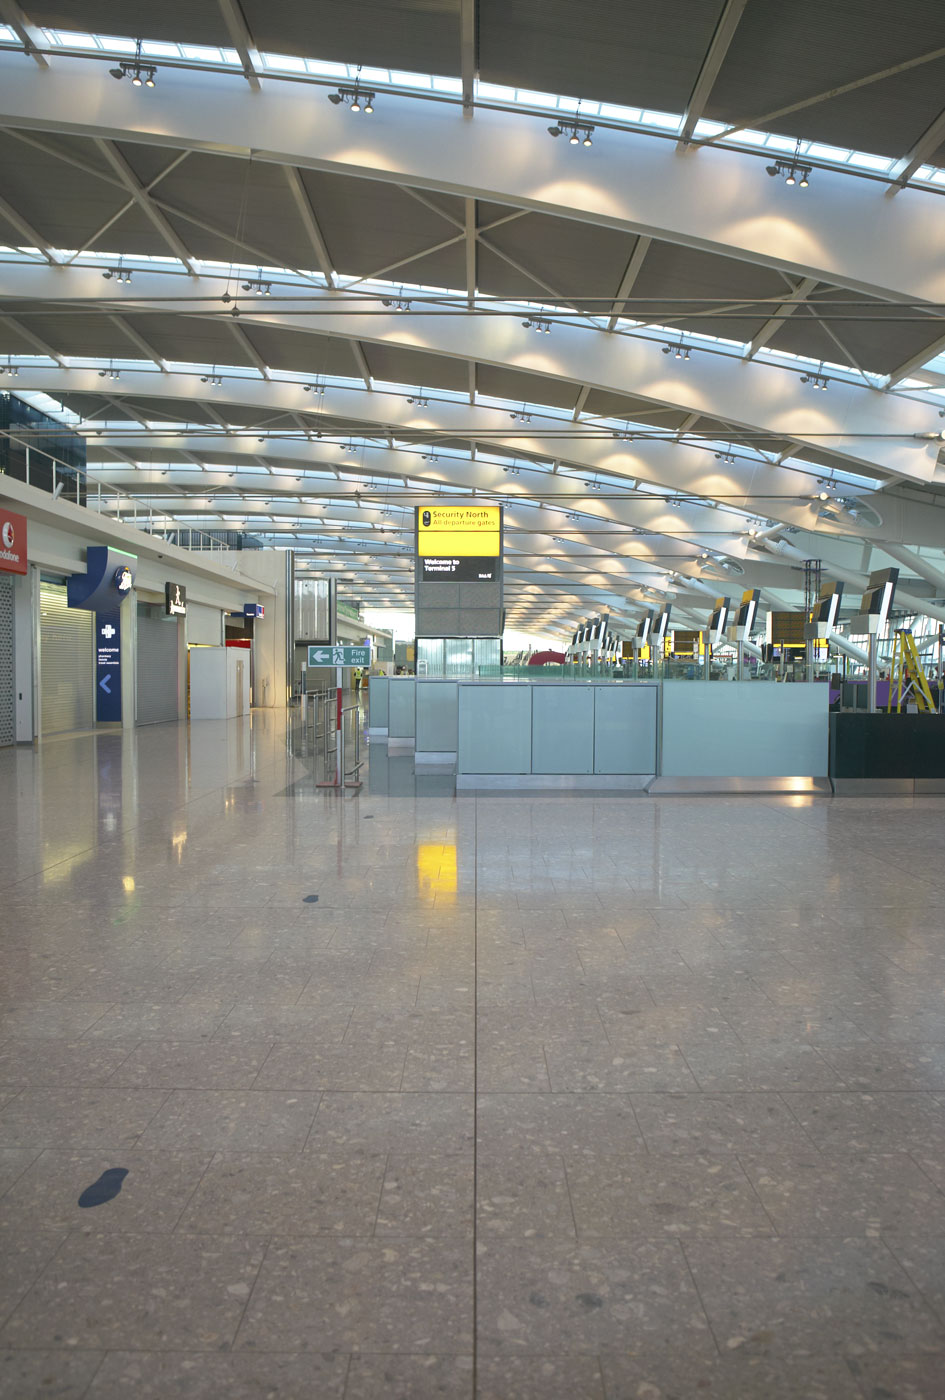 Heathrow Airport Terminal 5 steel and glass arched roof | Commercial Photographers London